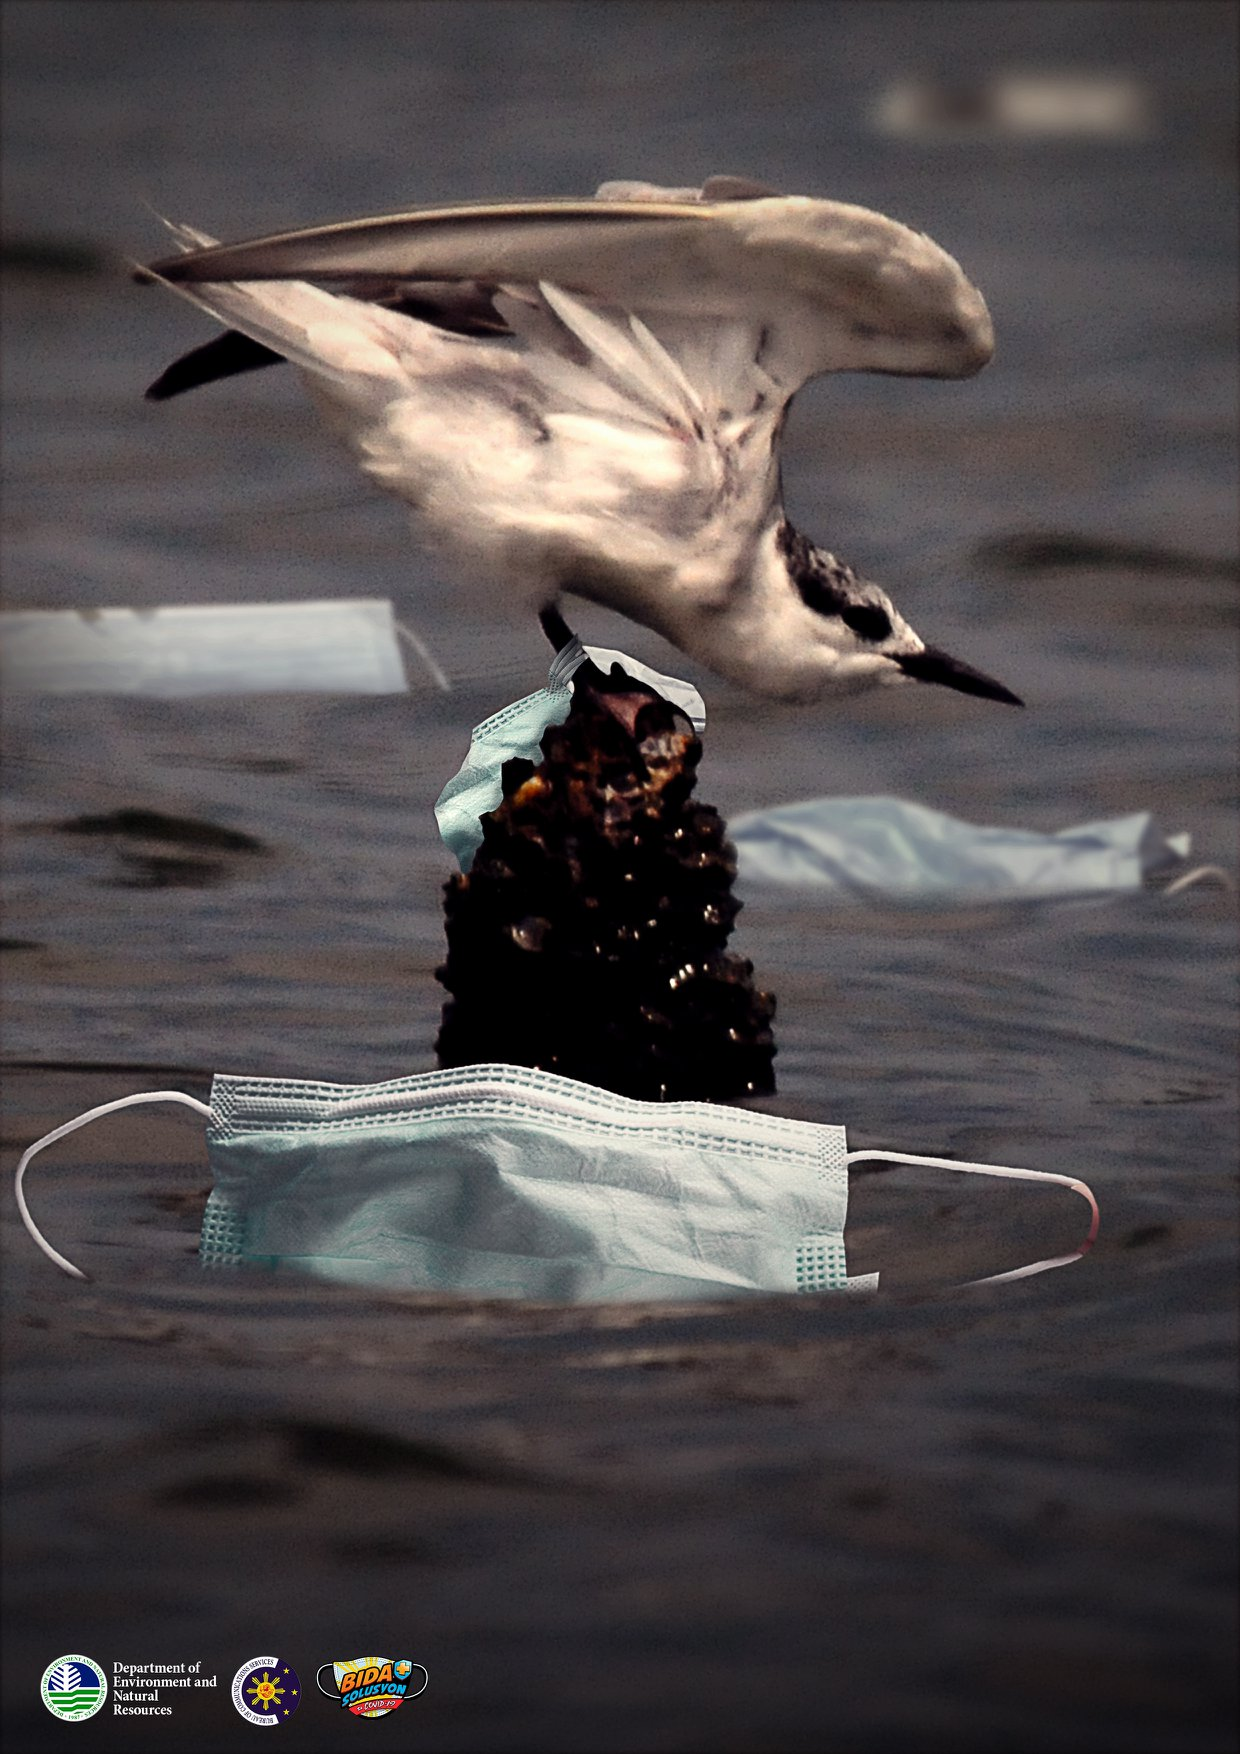 birds become entangled with trash like discarded used face mask